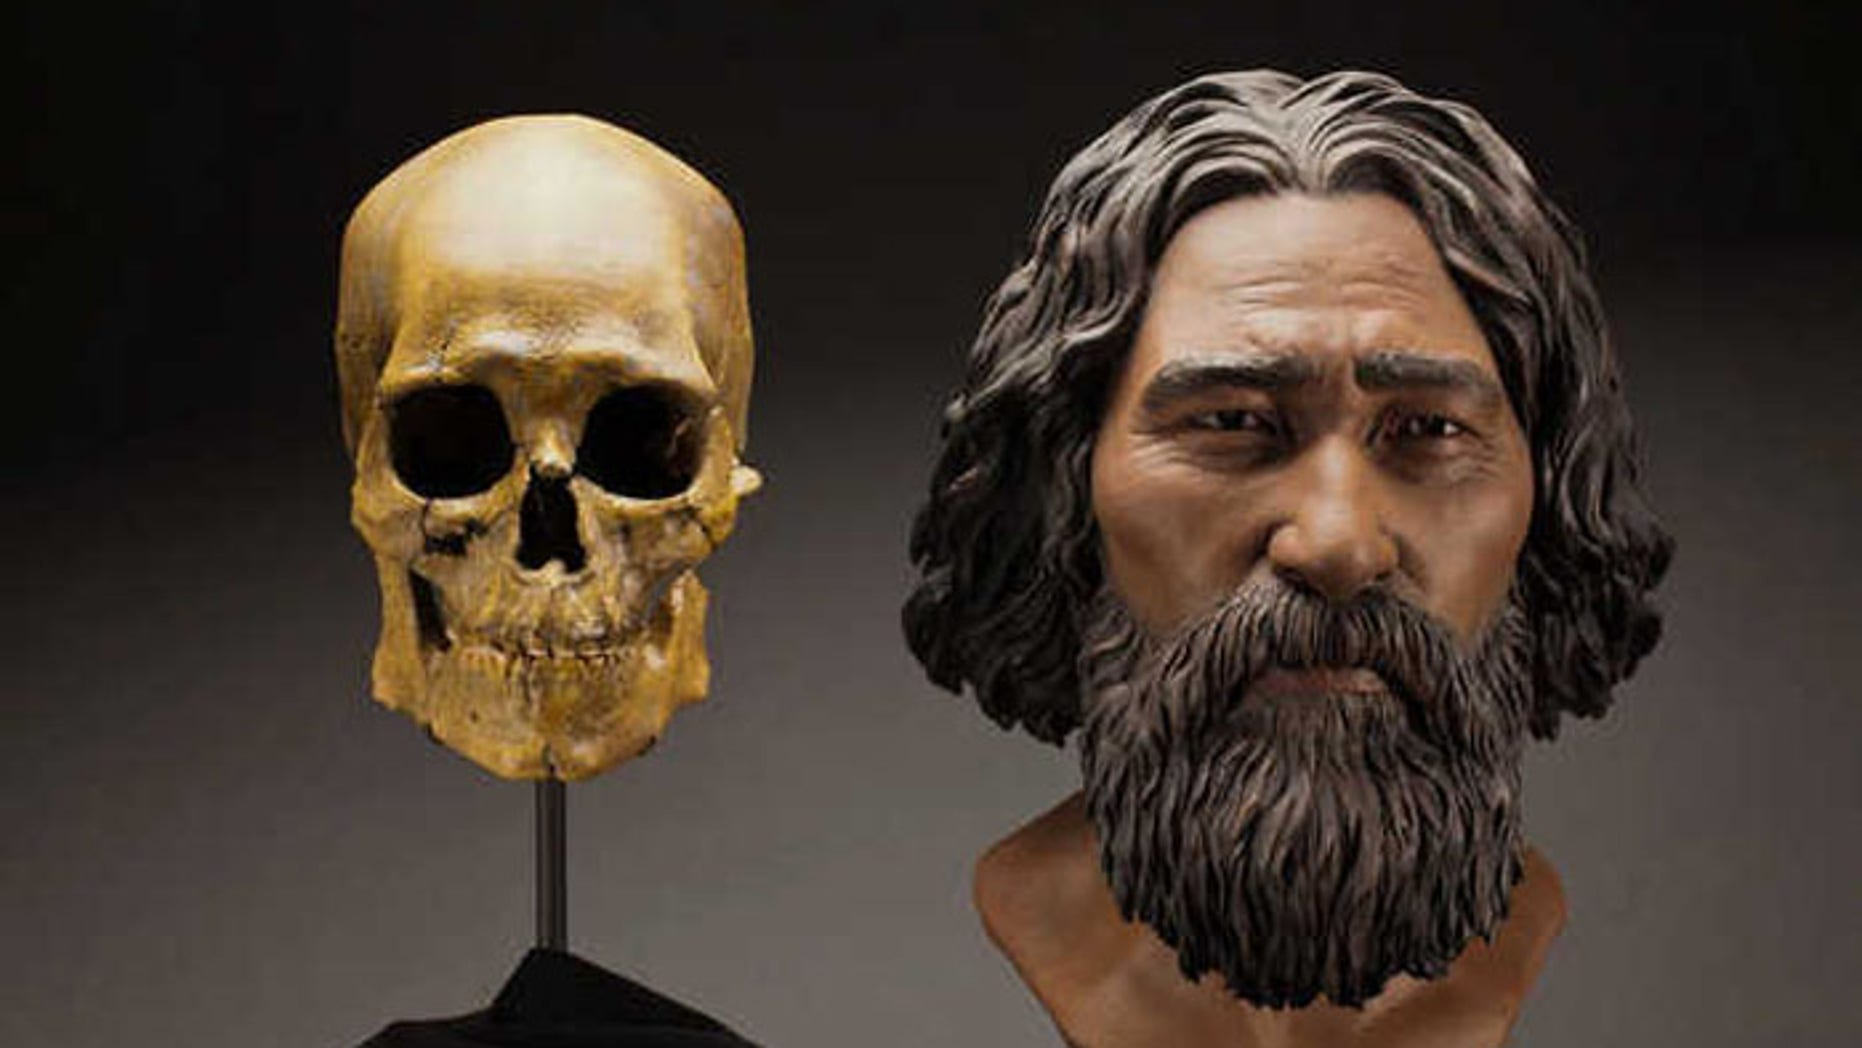 Kennewick Man may have more secrets to spill, according to top anthropologists. (Smithsonian)